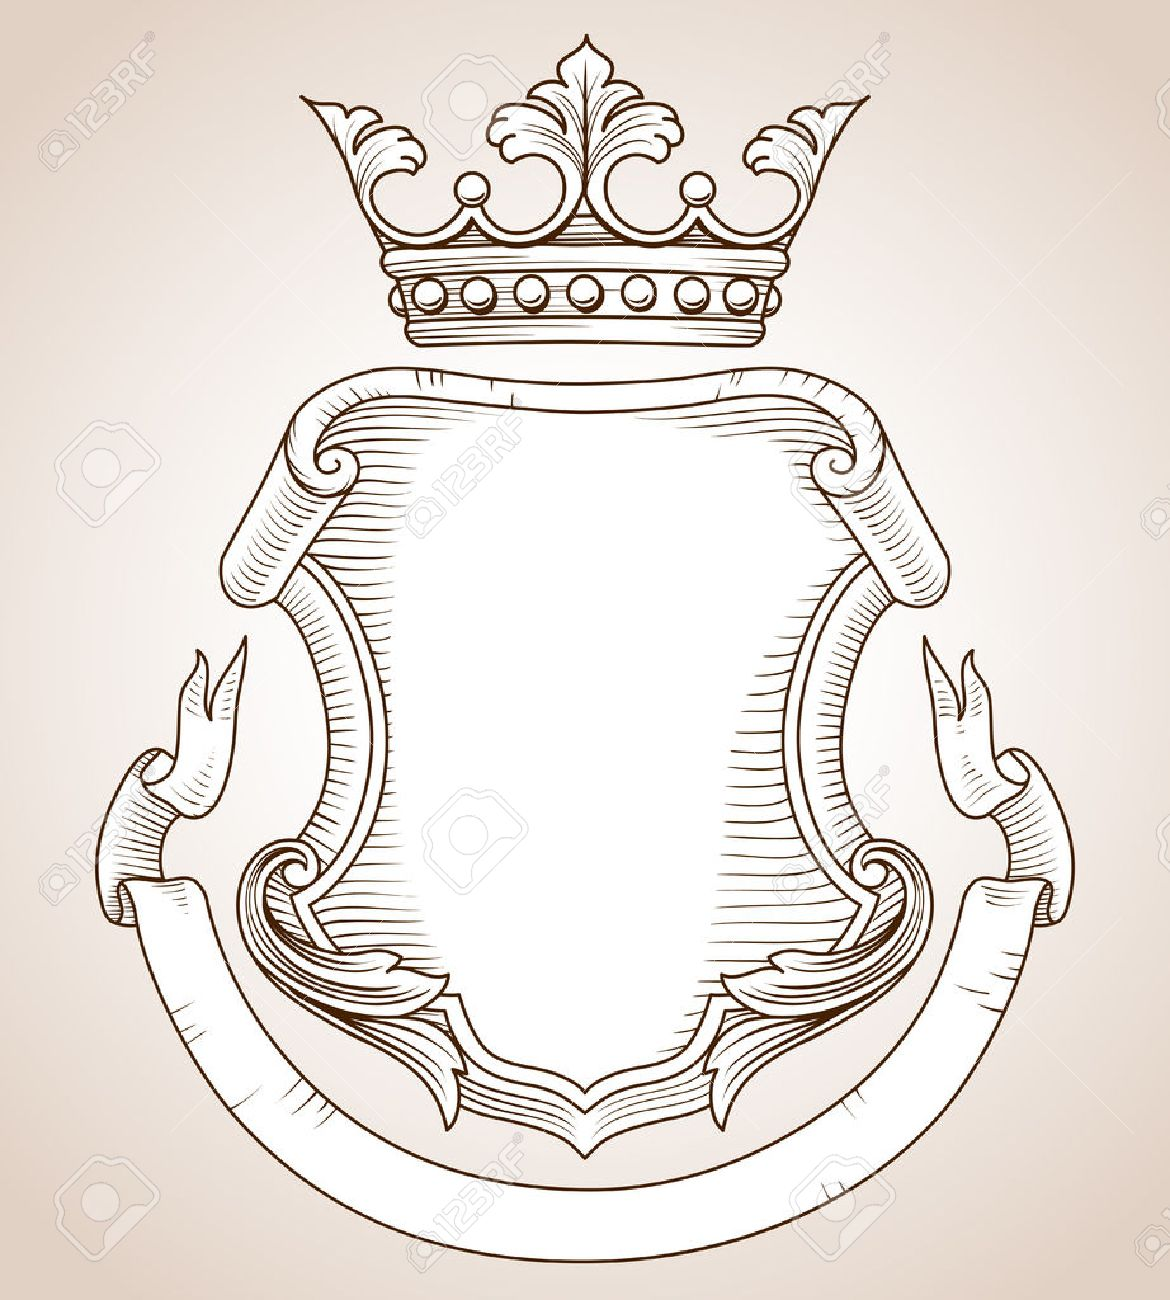 Coat Of Arms Photos Royalty Free Coat Of Arms Images And – Coat of Arms Template